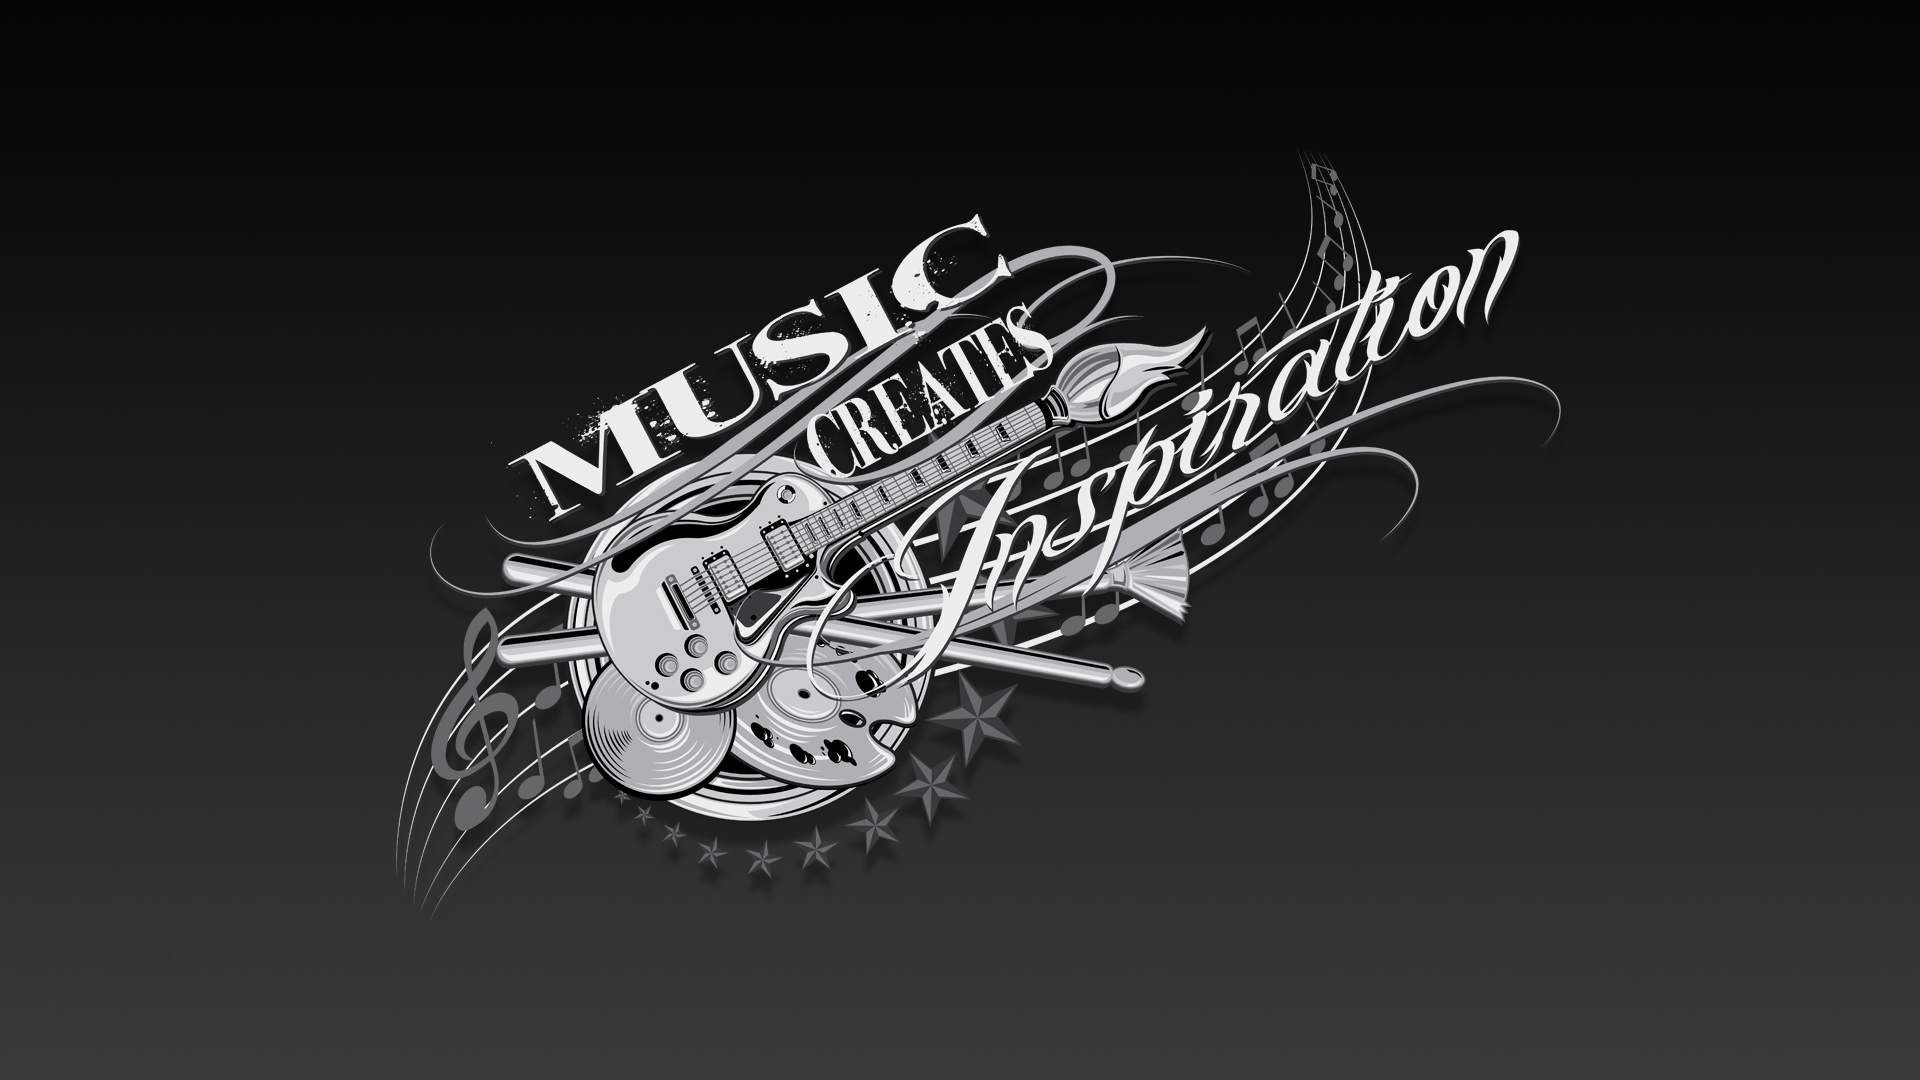 Amazing Wallpaper Music Deviantart - music_creates_inspiration_wallpaper_by_reyjdesigns-d56cnm4  Collection_93785.jpg